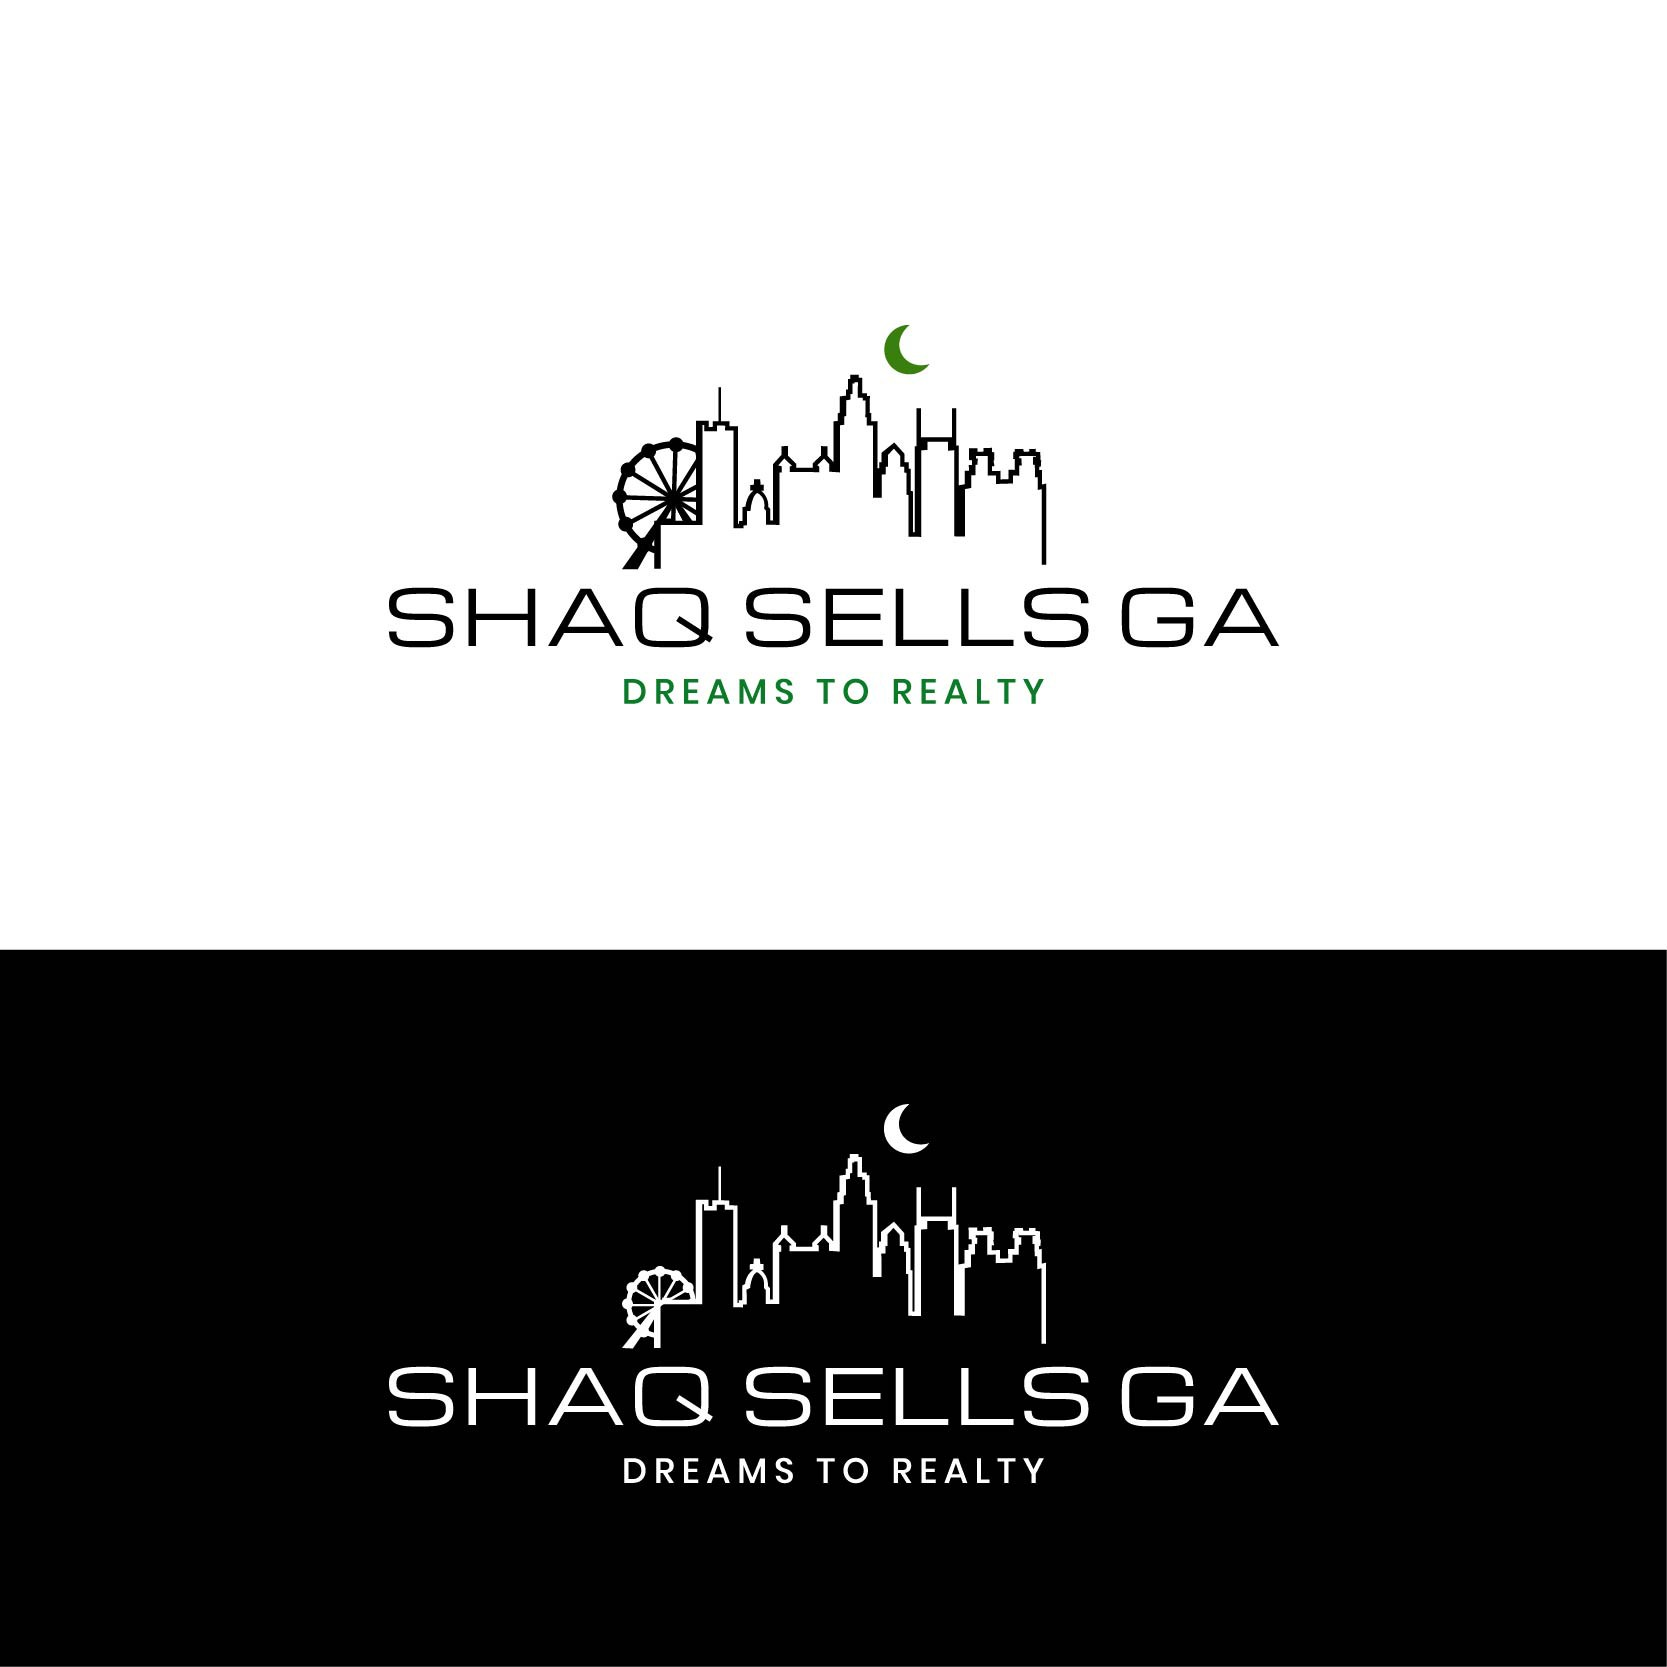 Real estate logo to appeal to home buyers and investors